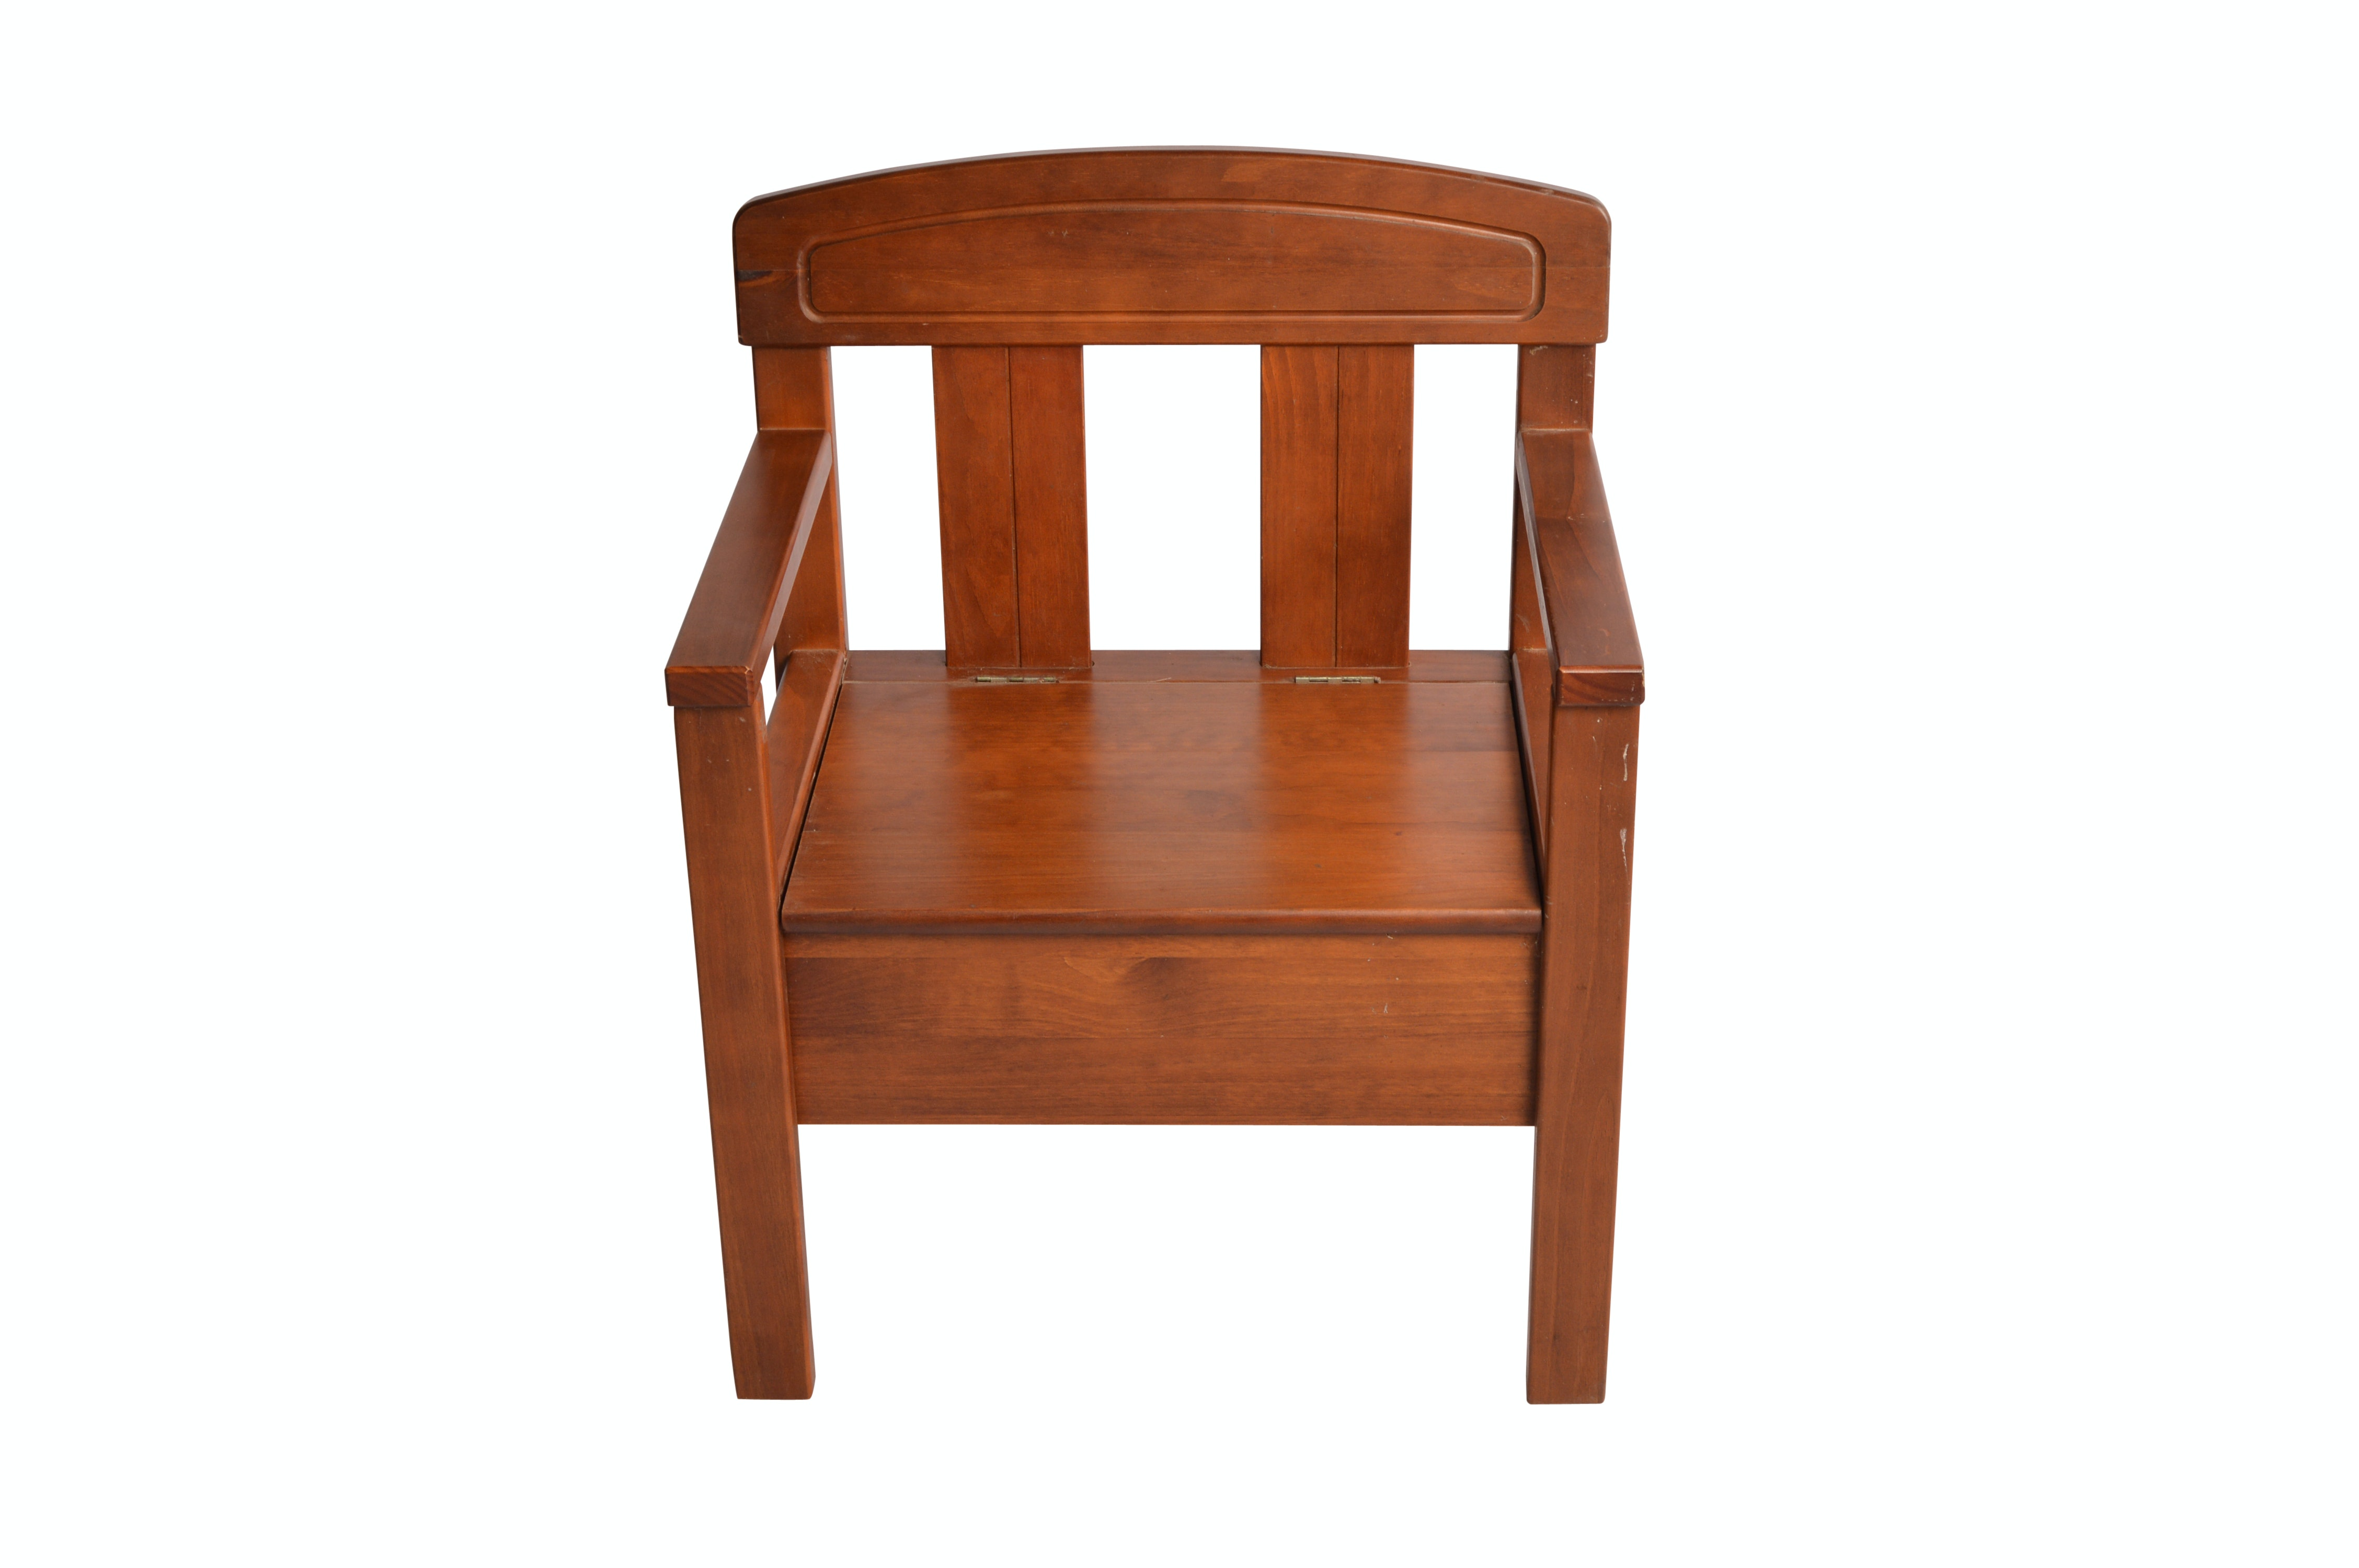 Youth Sized Wooden Chair with Storage Seat